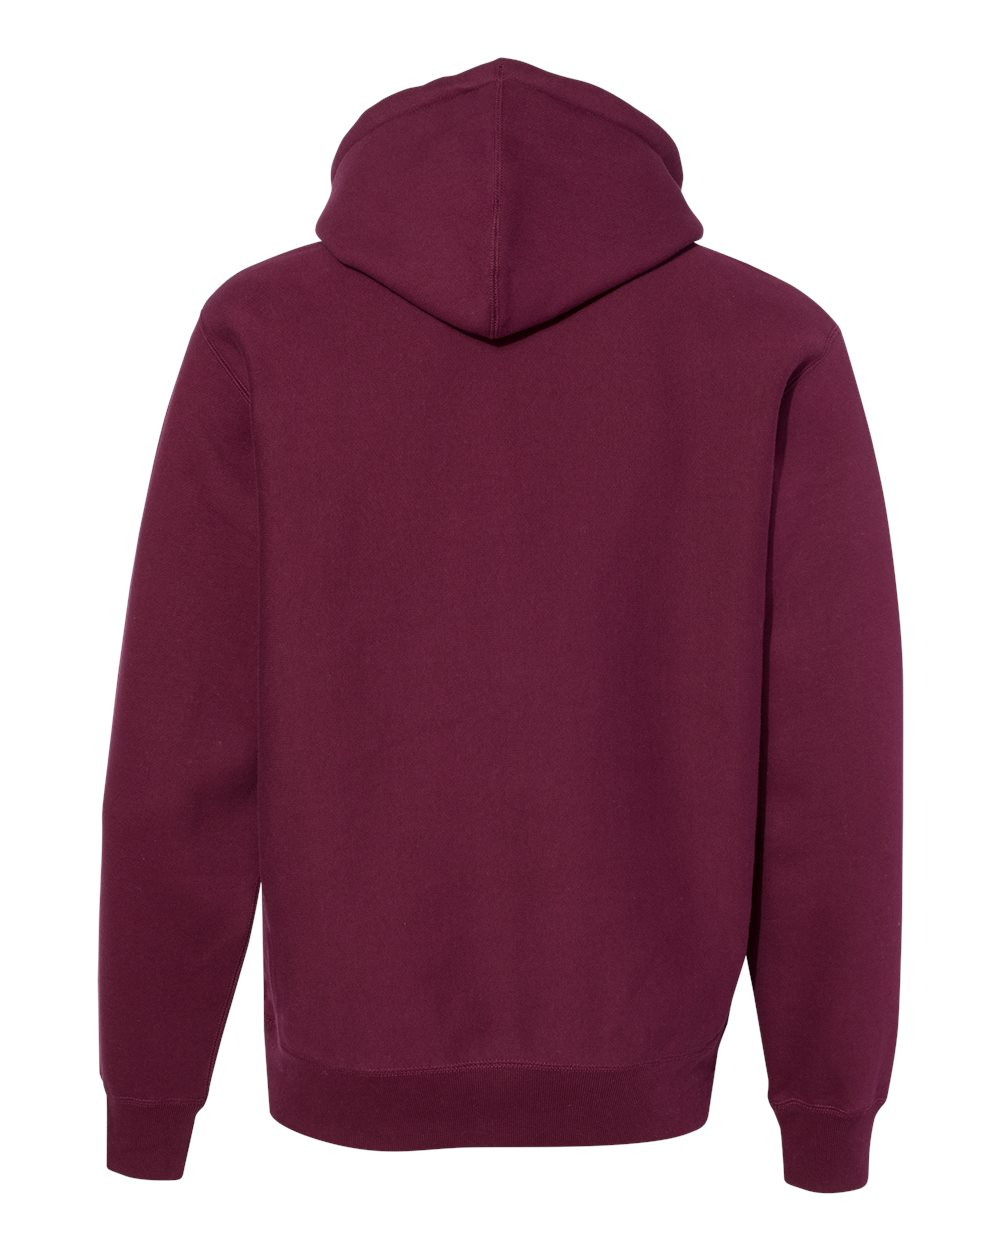 Independent-Trading-Co-Mens-Premium-Heavyweight-Cross-Grain-Hoodie-IND5000P thumbnail 25